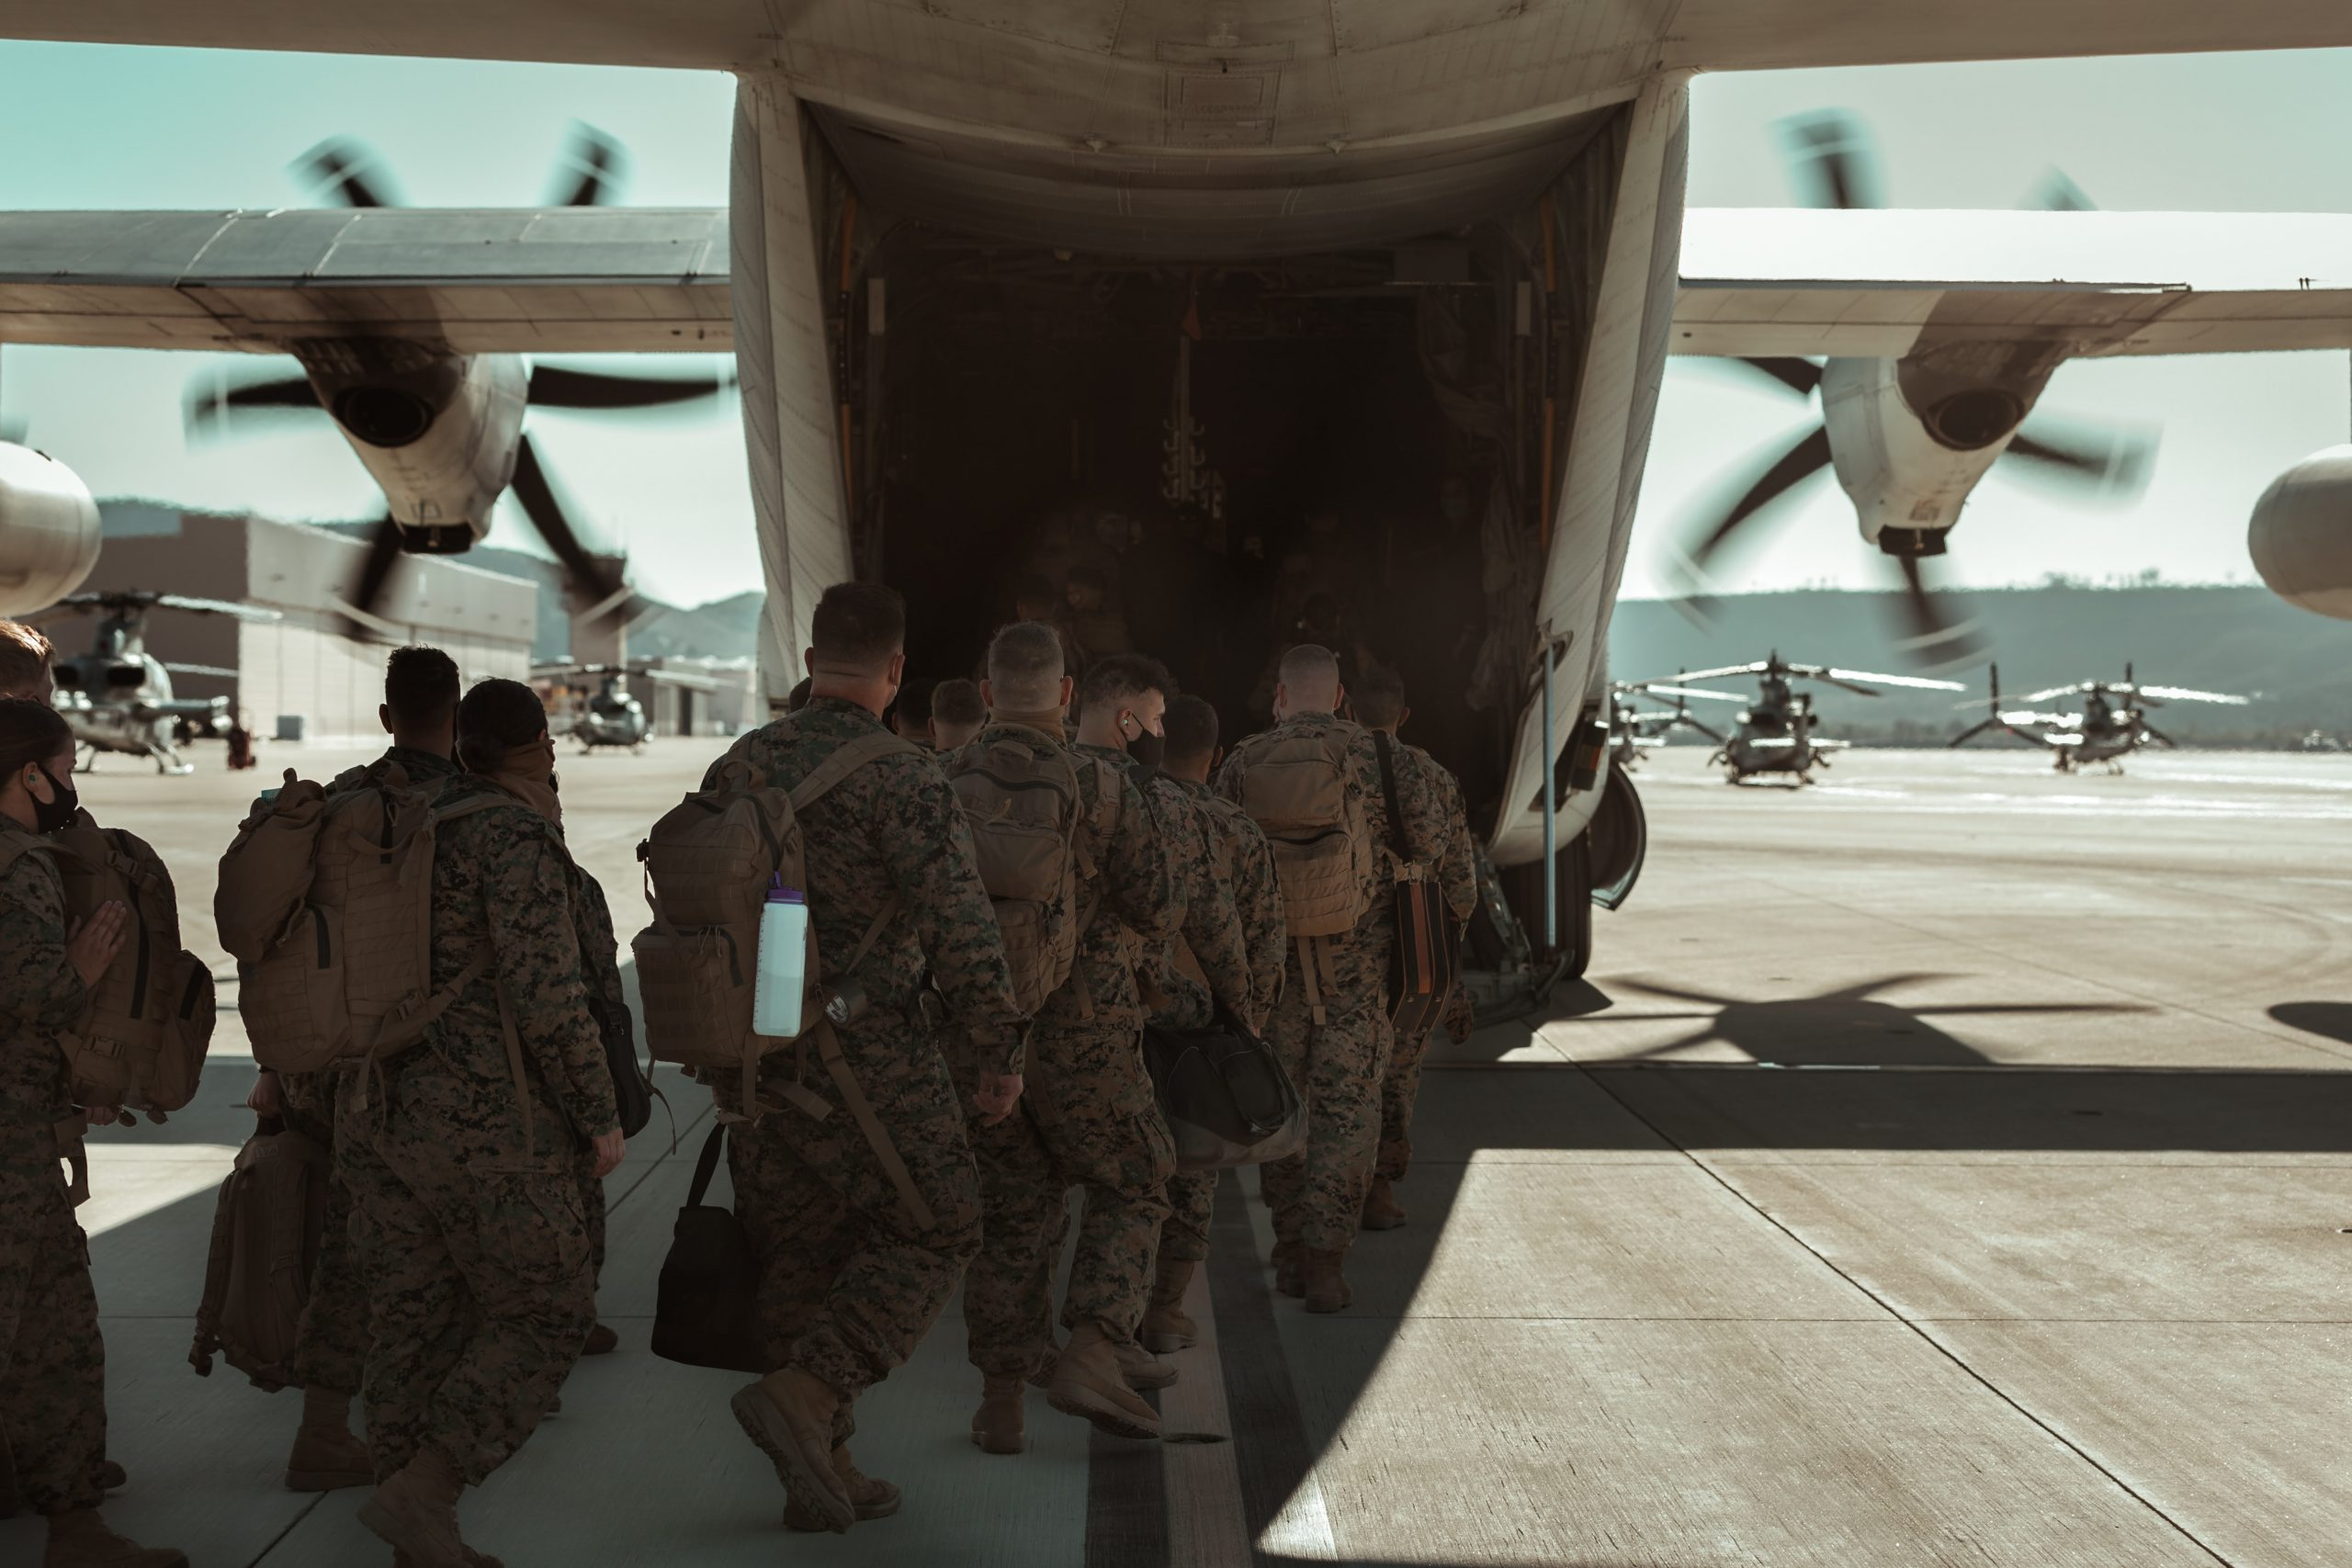 America tried nation-building in Afghanistan — but never committed to it